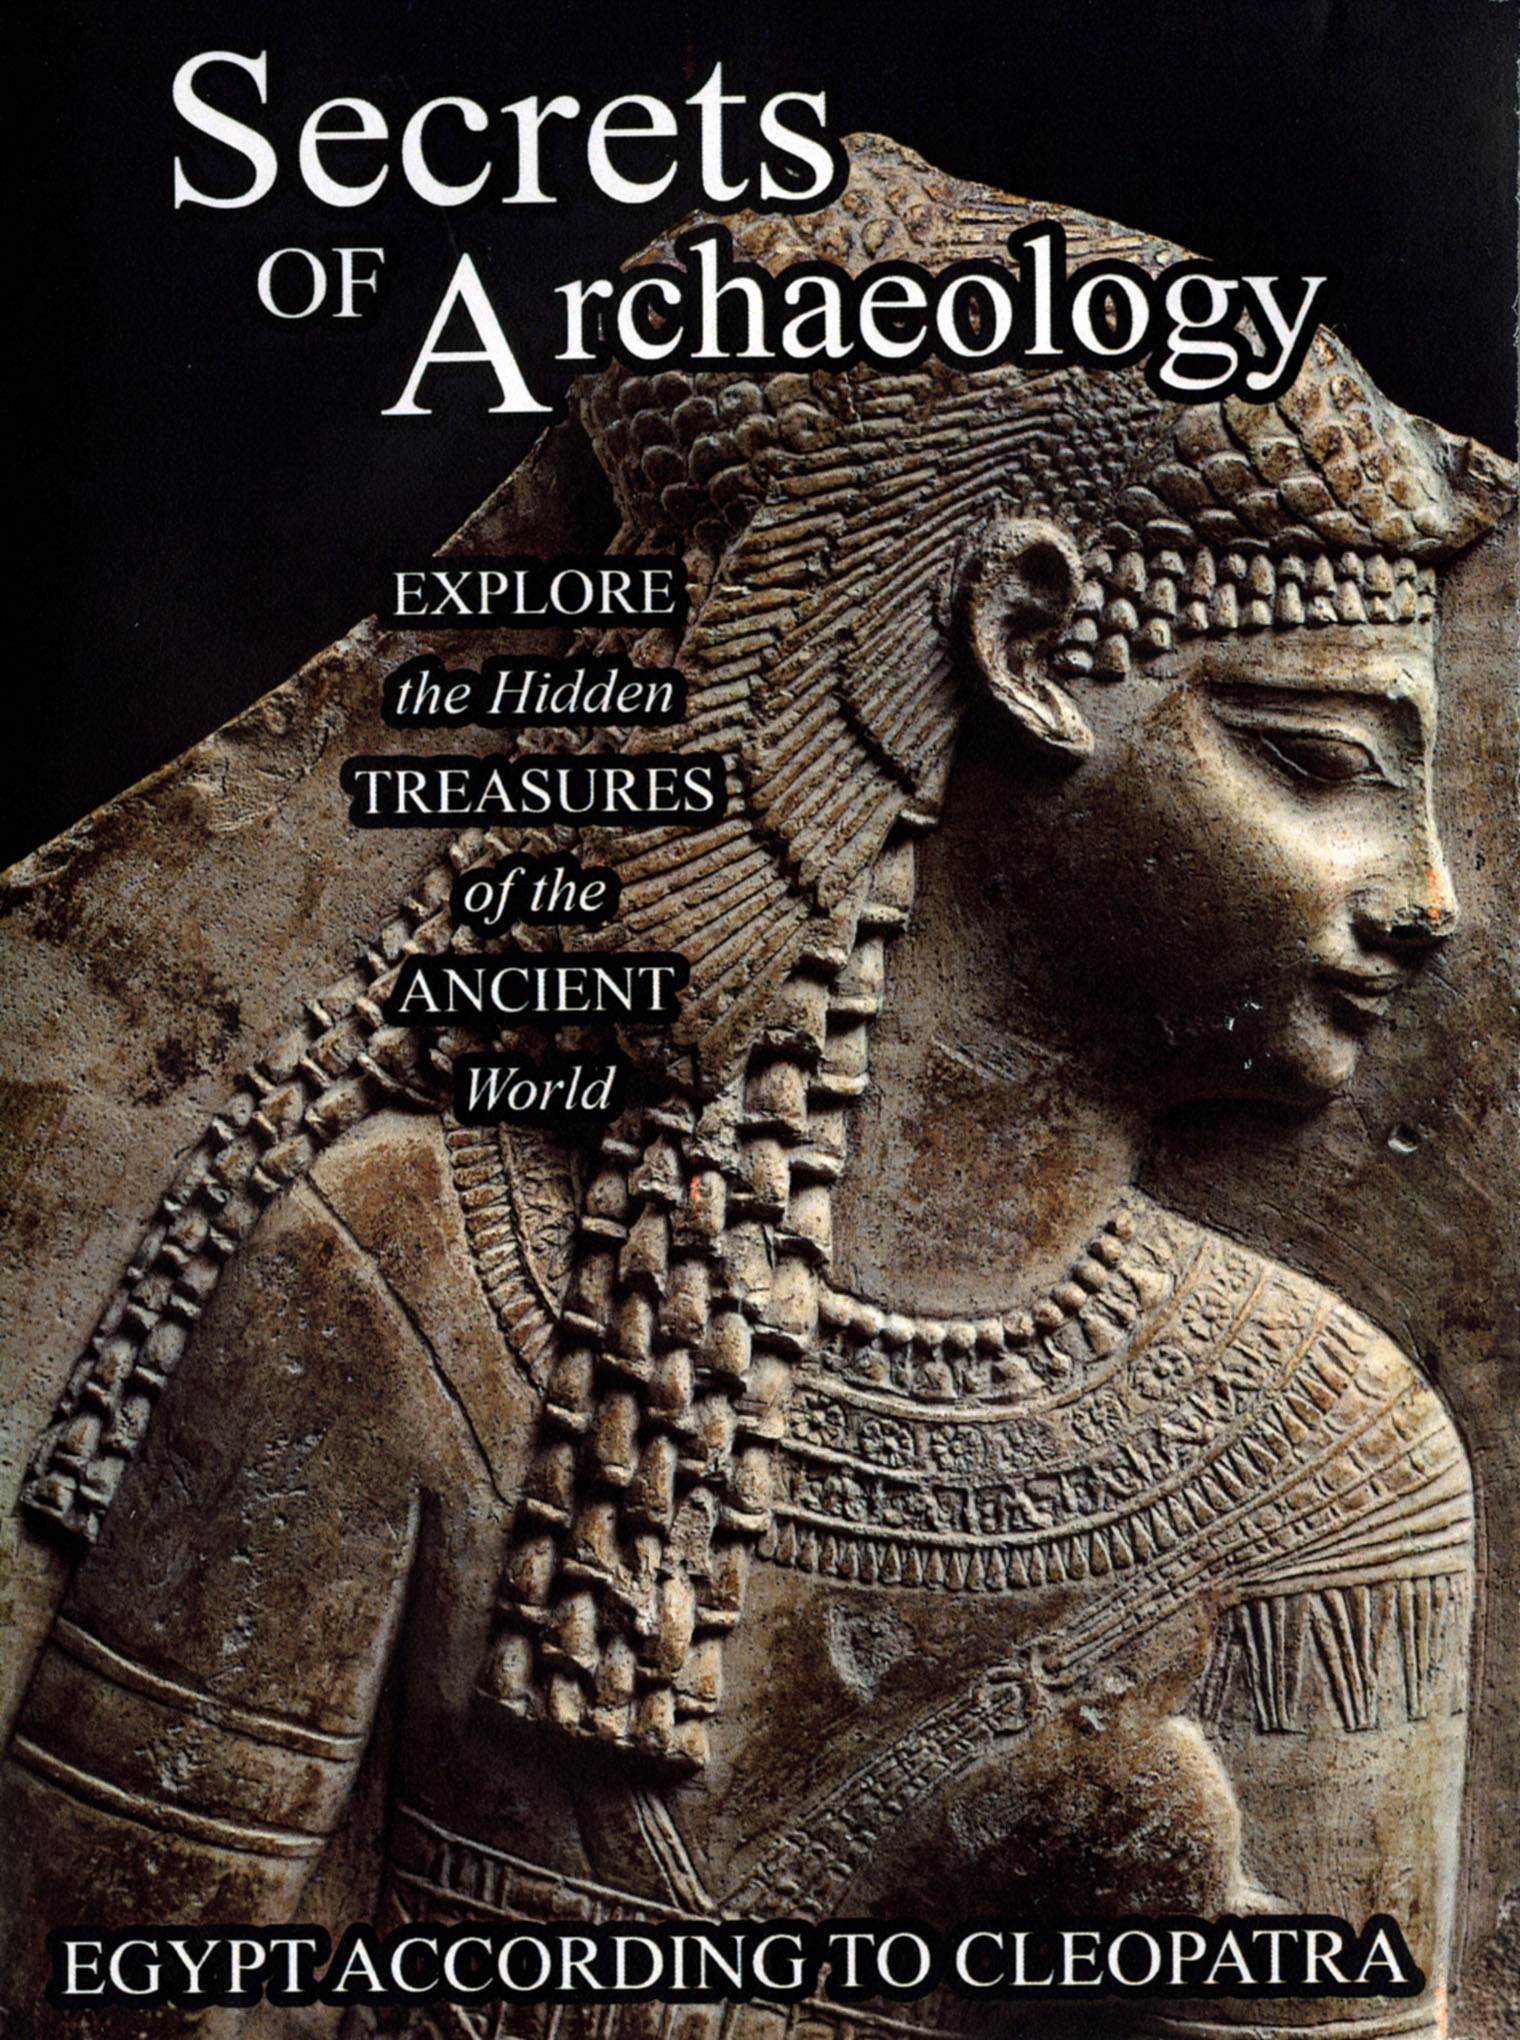 Secrets of Archaeology: Egypt According to Cleopatra